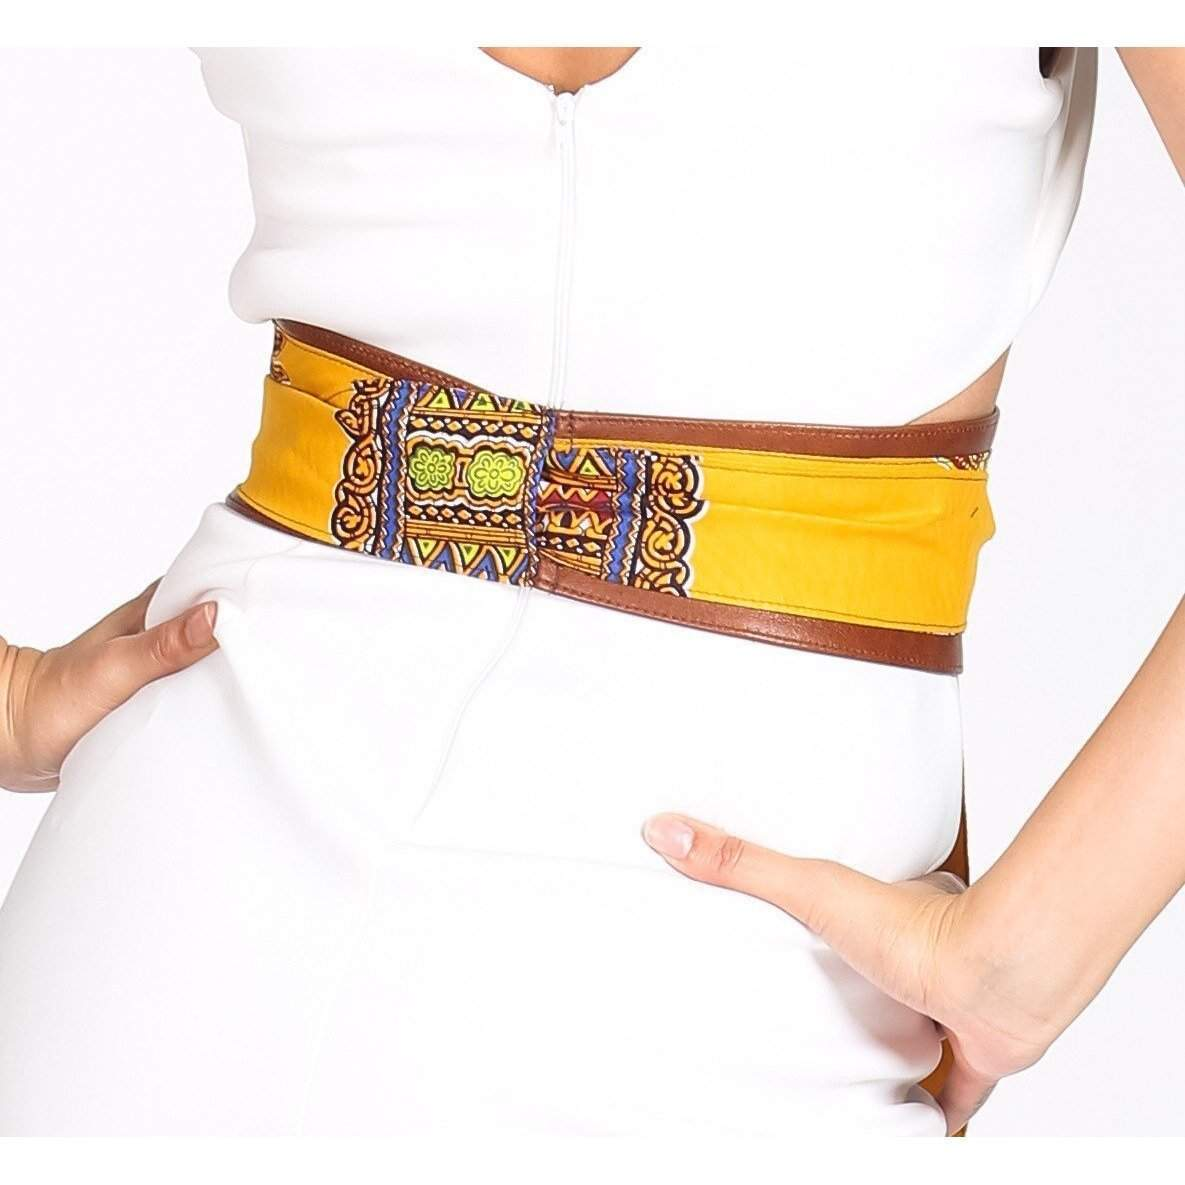 Tan Leather Yellow Dashiki Wax Print corset Obi Belt - loveyaayaa